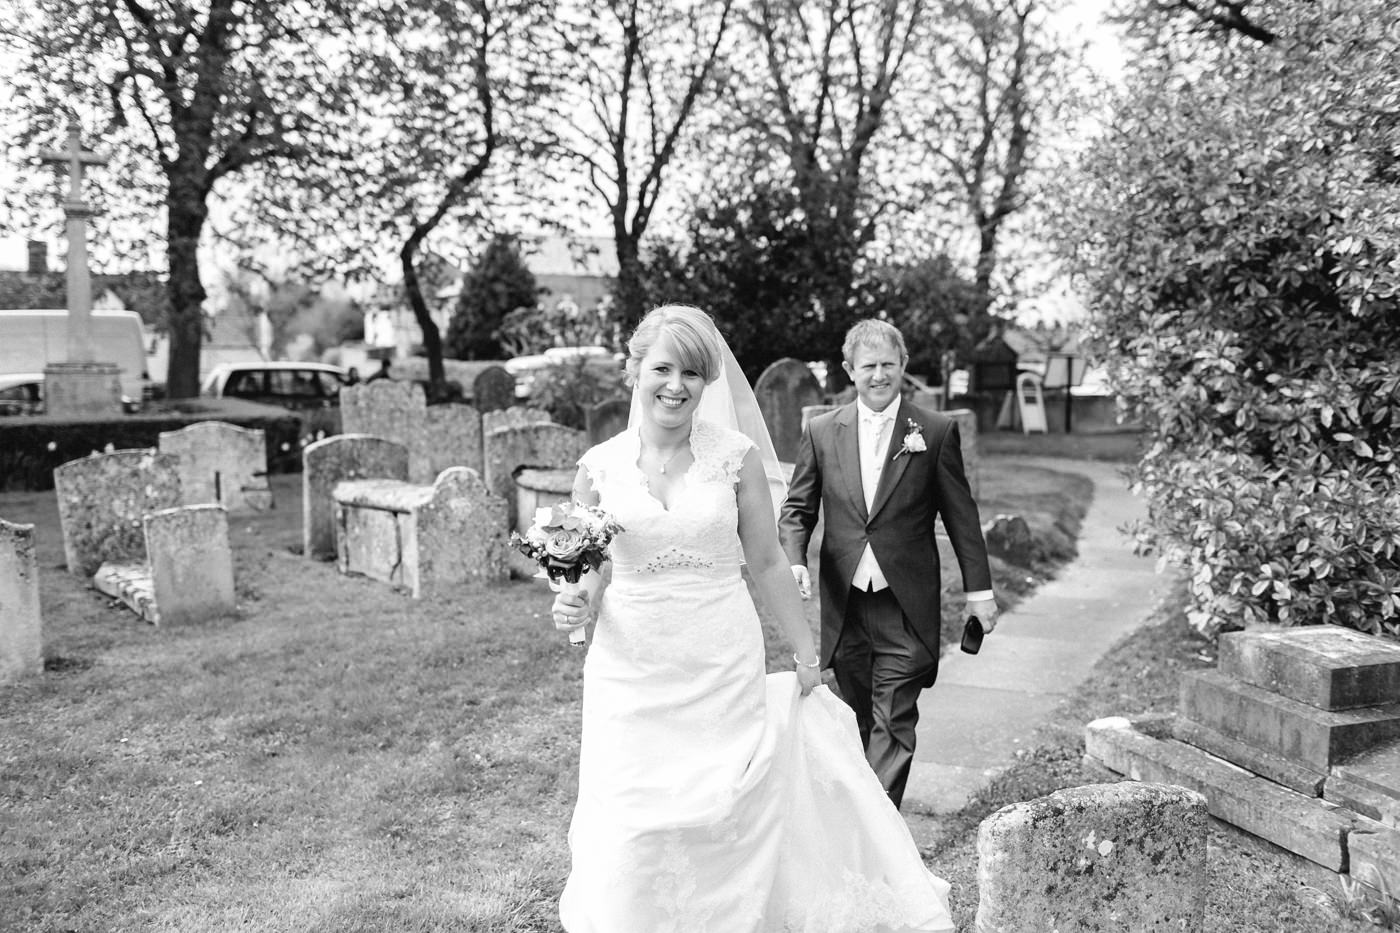 Laura + Jovi 2015 Chippenham Park Gardens ALEX WARD PHOTO-7957.jpg